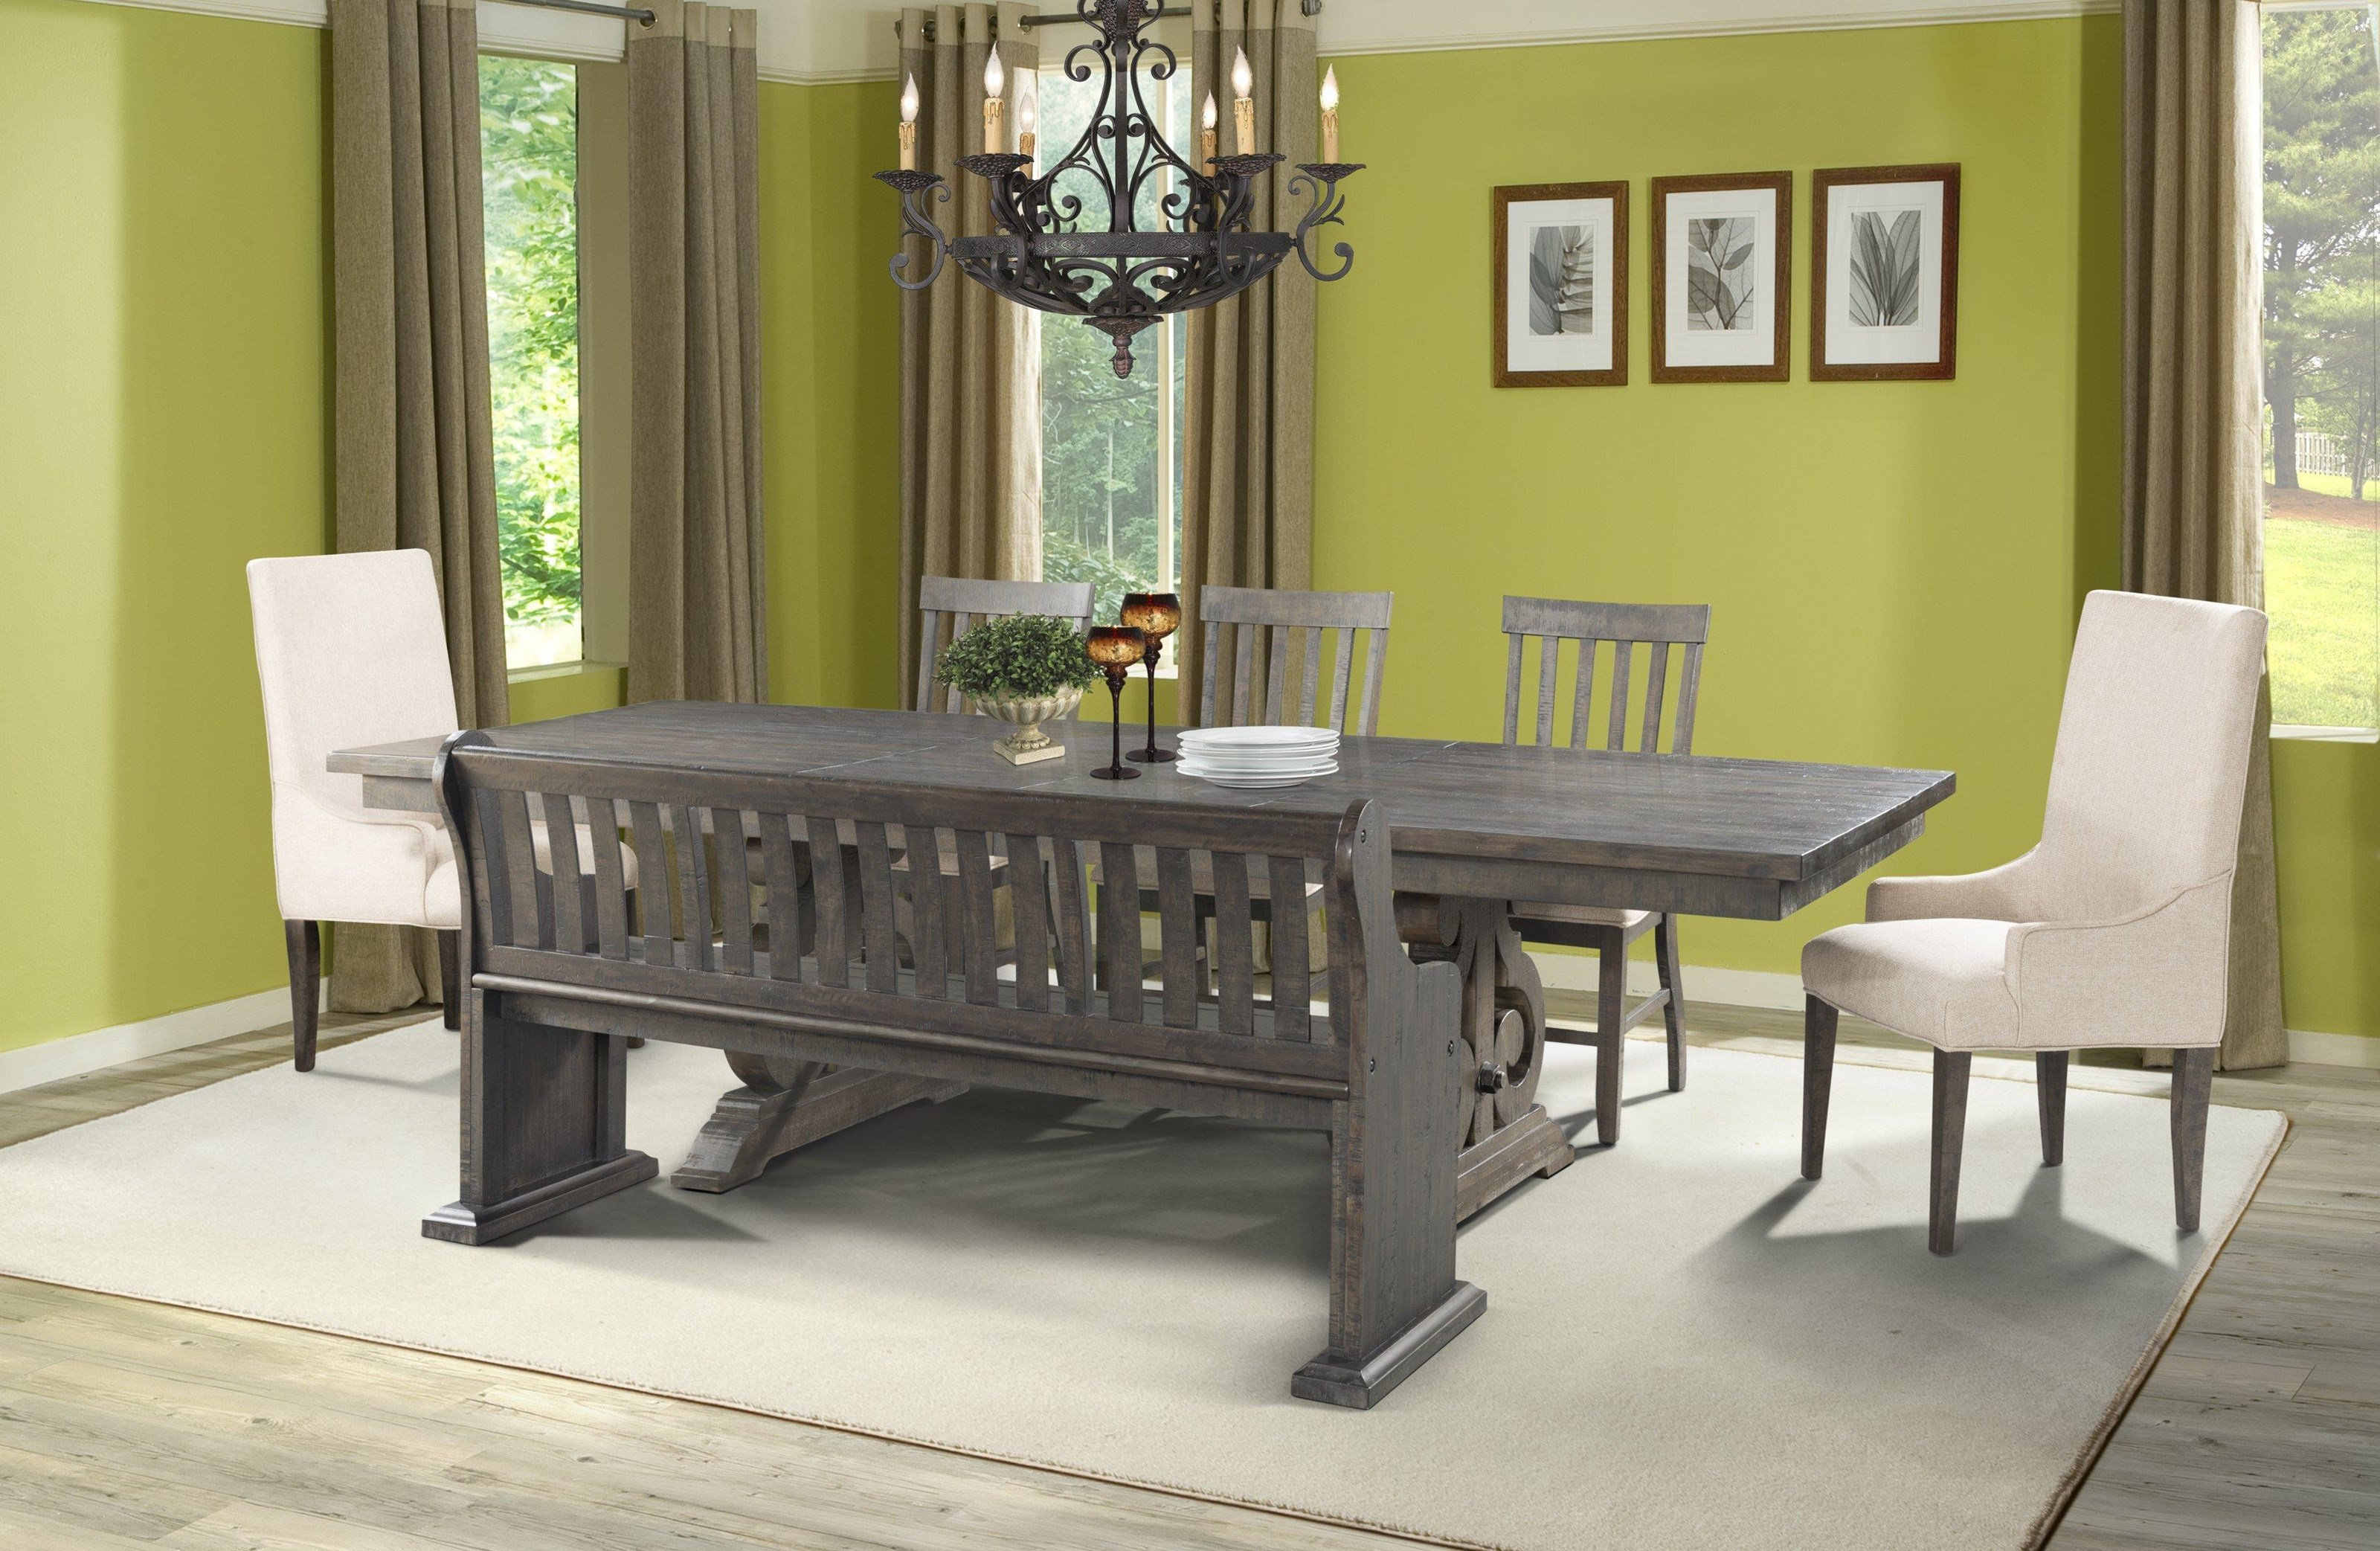 Elements International StoneDining Table, 3 Side Chairs, 2 Parsons Chair ...